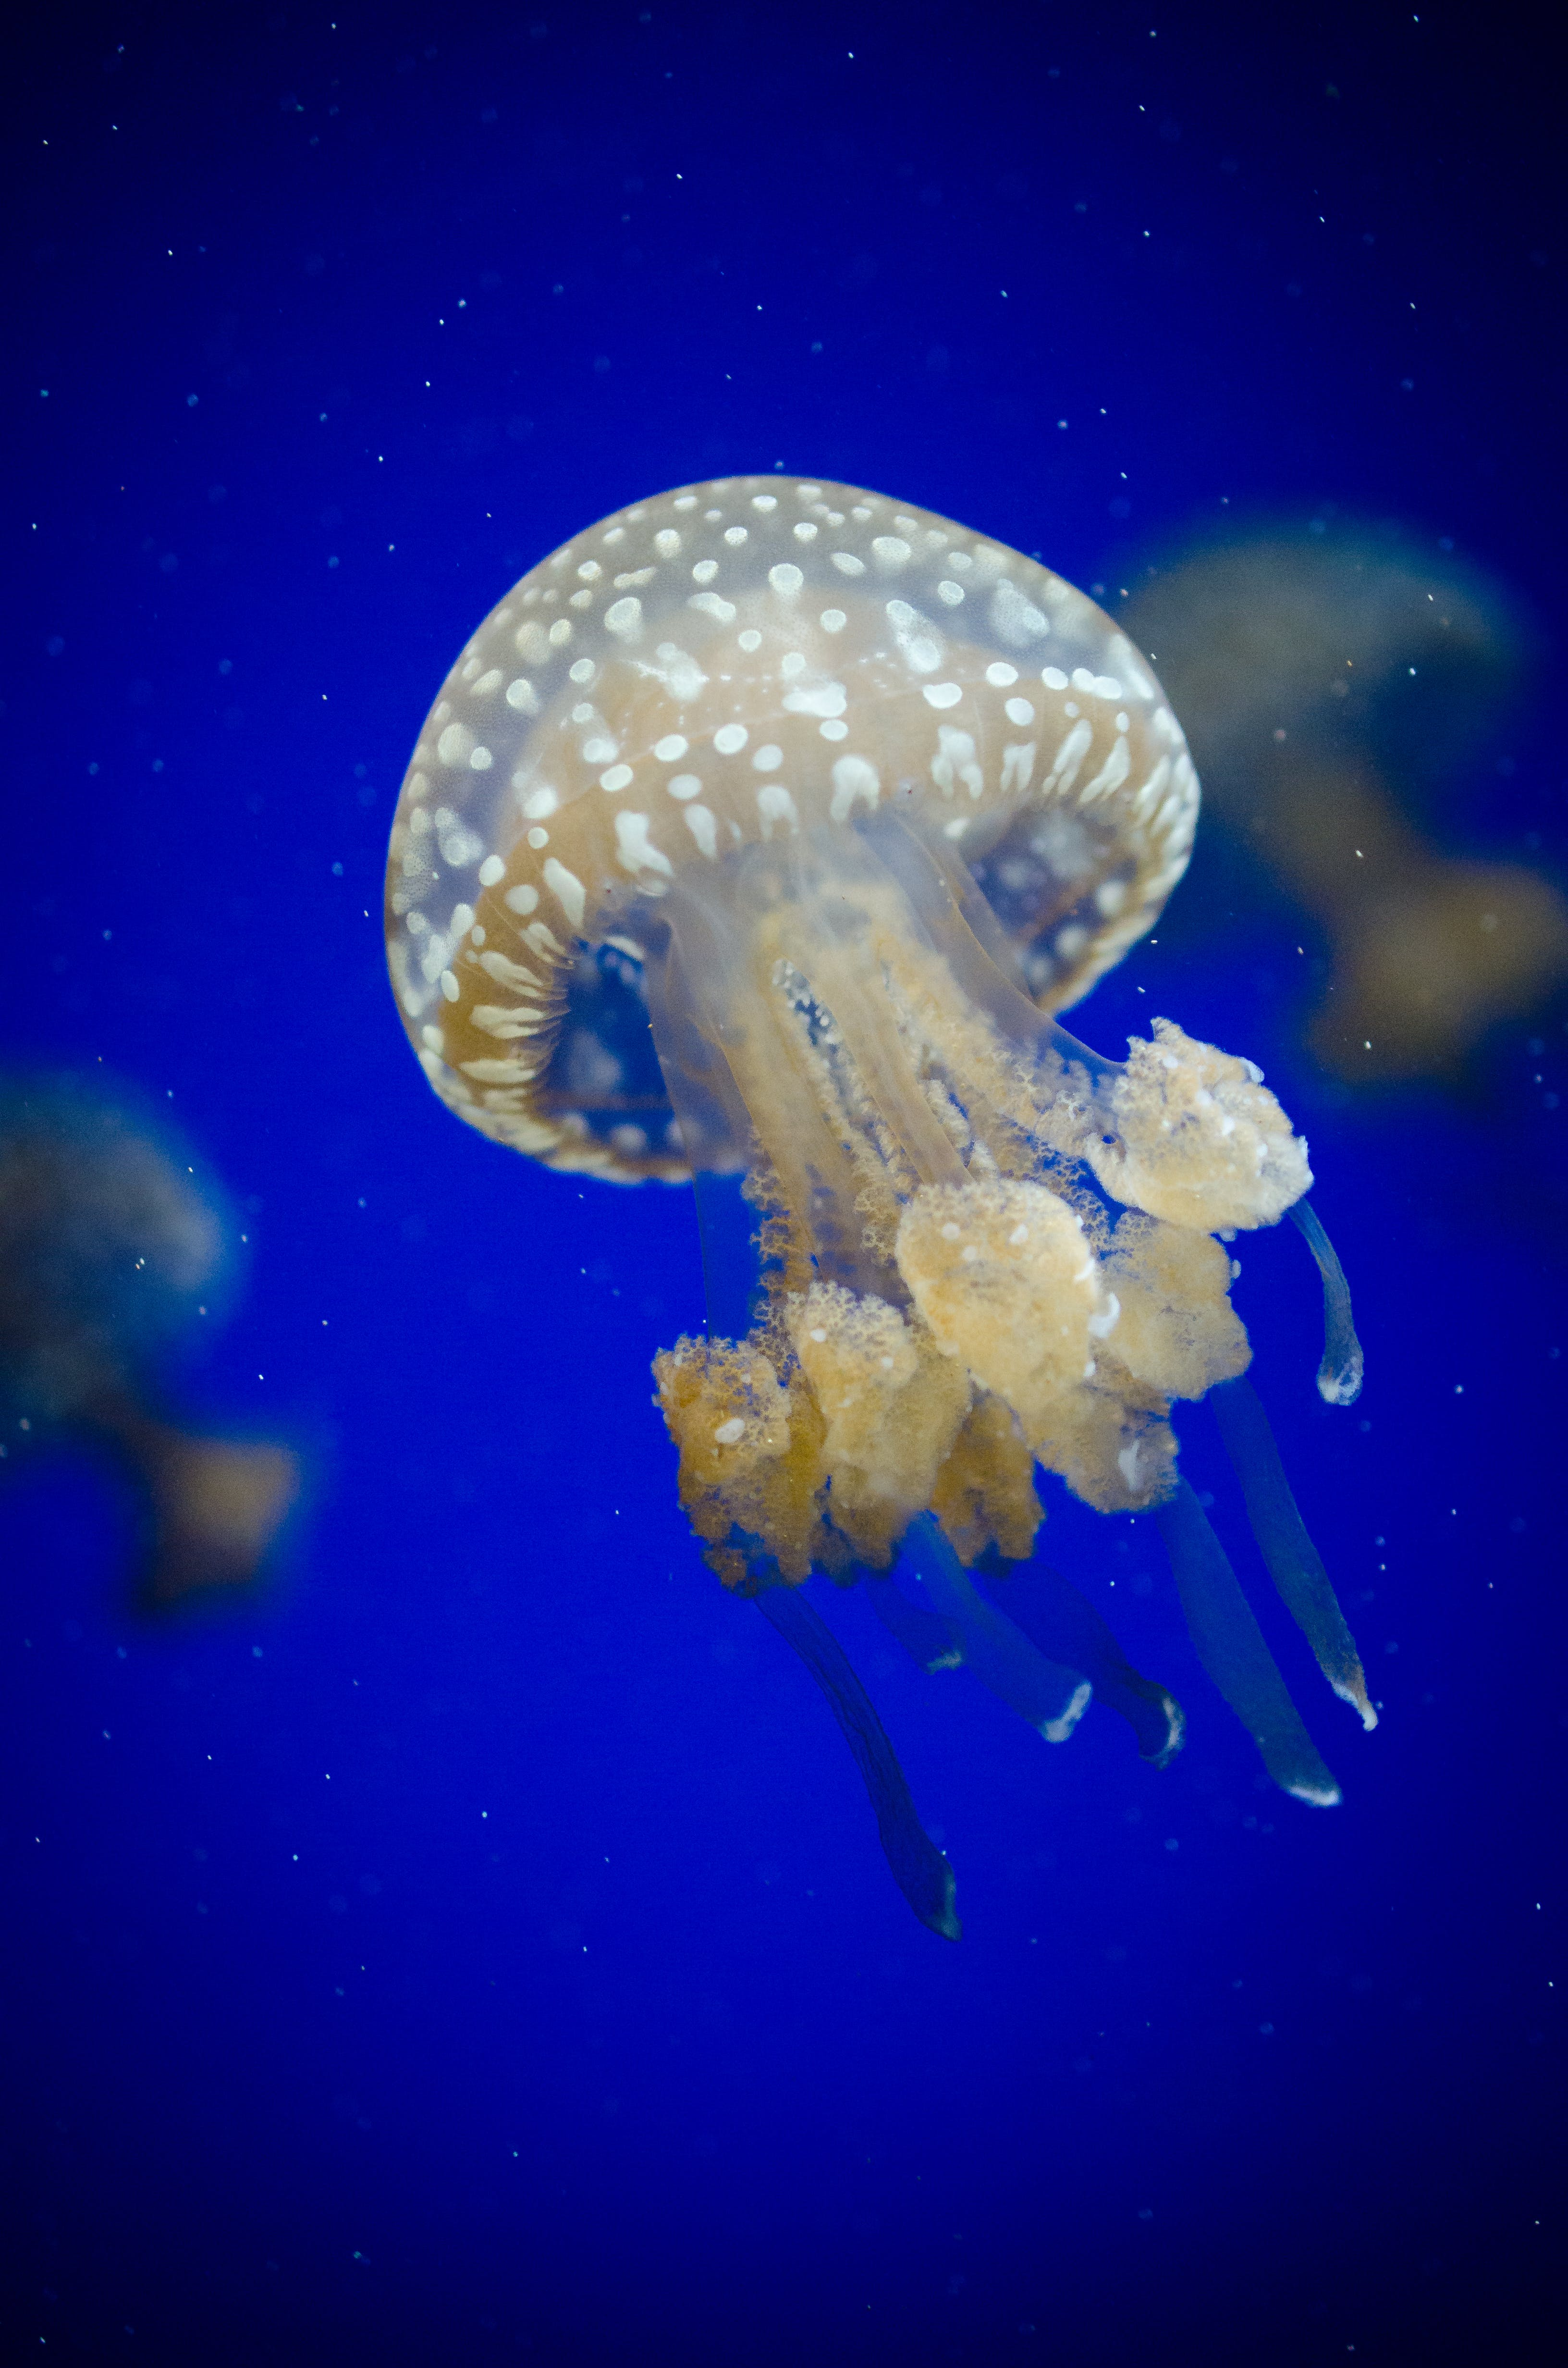 White Jelly Fish on Water